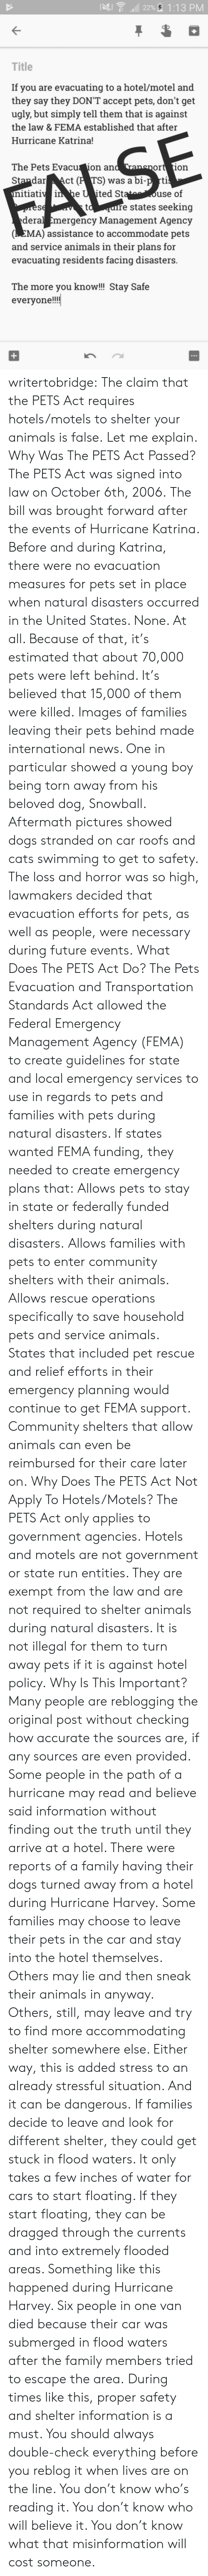 misinformation: 22%A 1:13 PM  Title  If you are evacuating to a hotel/motel and  they say they DON'T accept pets, don't get  ugly, but simply tell them that is against  the law & FEMA established that after  Hurricane Katrina!  The Pets Evacu ion an  StandarAct (P TS) was a bi-p rti  itiaii he U ited St  ort 1on  use of  re states seeking  deral Emergency Management Agency  (EMA) assistance to accommodate pets  and service animals in their plans for  evacuating residents facing disasters  The more you know!!! Stay Safe  everyon!! writertobridge: The claim that the PETS Act requires hotels/motels to shelter your animals is false. Let me explain. Why Was The PETS Act Passed? The PETS Act was signed into law on October 6th, 2006. The bill was brought forward after the events of Hurricane Katrina. Before and during Katrina, there were no evacuation measures for pets set in place when natural disasters occurred in the United States. None. At all. Because of that, it's estimated that about 70,000 pets were left behind. It's believed that 15,000 of them were killed. Images of families leaving their pets behind made international news. One in particular showed a young boy being torn away from his beloved dog, Snowball. Aftermath pictures showed dogs stranded on car roofs and cats swimming to get to safety. The loss and horror was so high, lawmakers decided that evacuation efforts for pets, as well as people, were necessary during future events. What Does The PETS Act Do? The Pets Evacuation and Transportation Standards Act allowed the Federal Emergency Management Agency (FEMA) to create guidelines for state and local emergency services to use in regards to pets and families with pets during natural disasters. If states wanted FEMA funding, they needed to create emergency plans that: Allows pets to stay in state or federally funded shelters during natural disasters.  Allows families with pets to enter community shelters with their animals. Allows rescue operations specifical